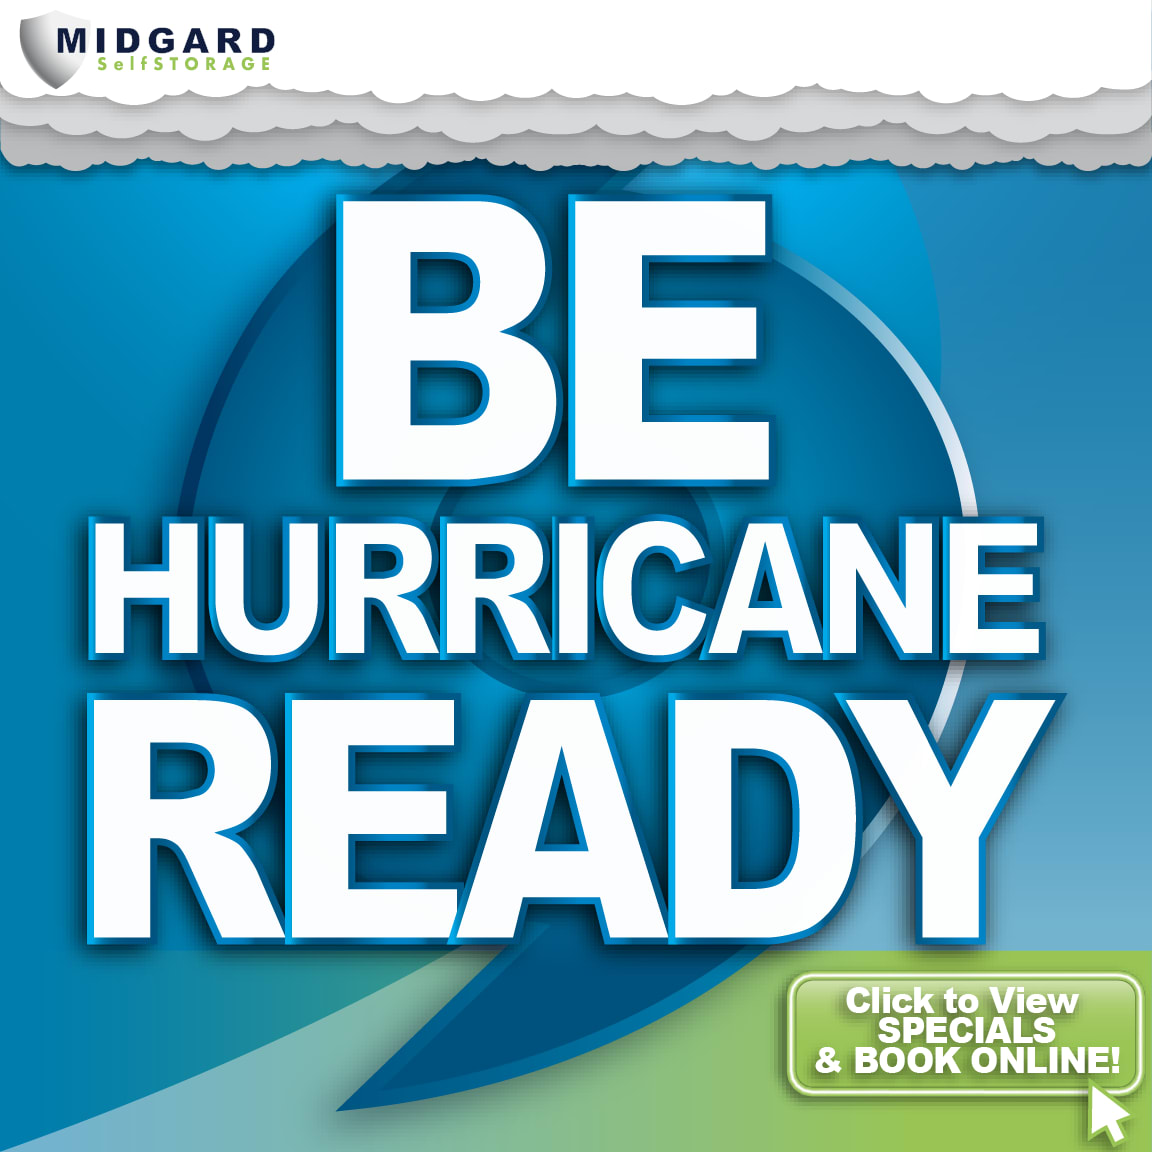 Hurricane tips from Midgard Self Storage in Florence, Alabama